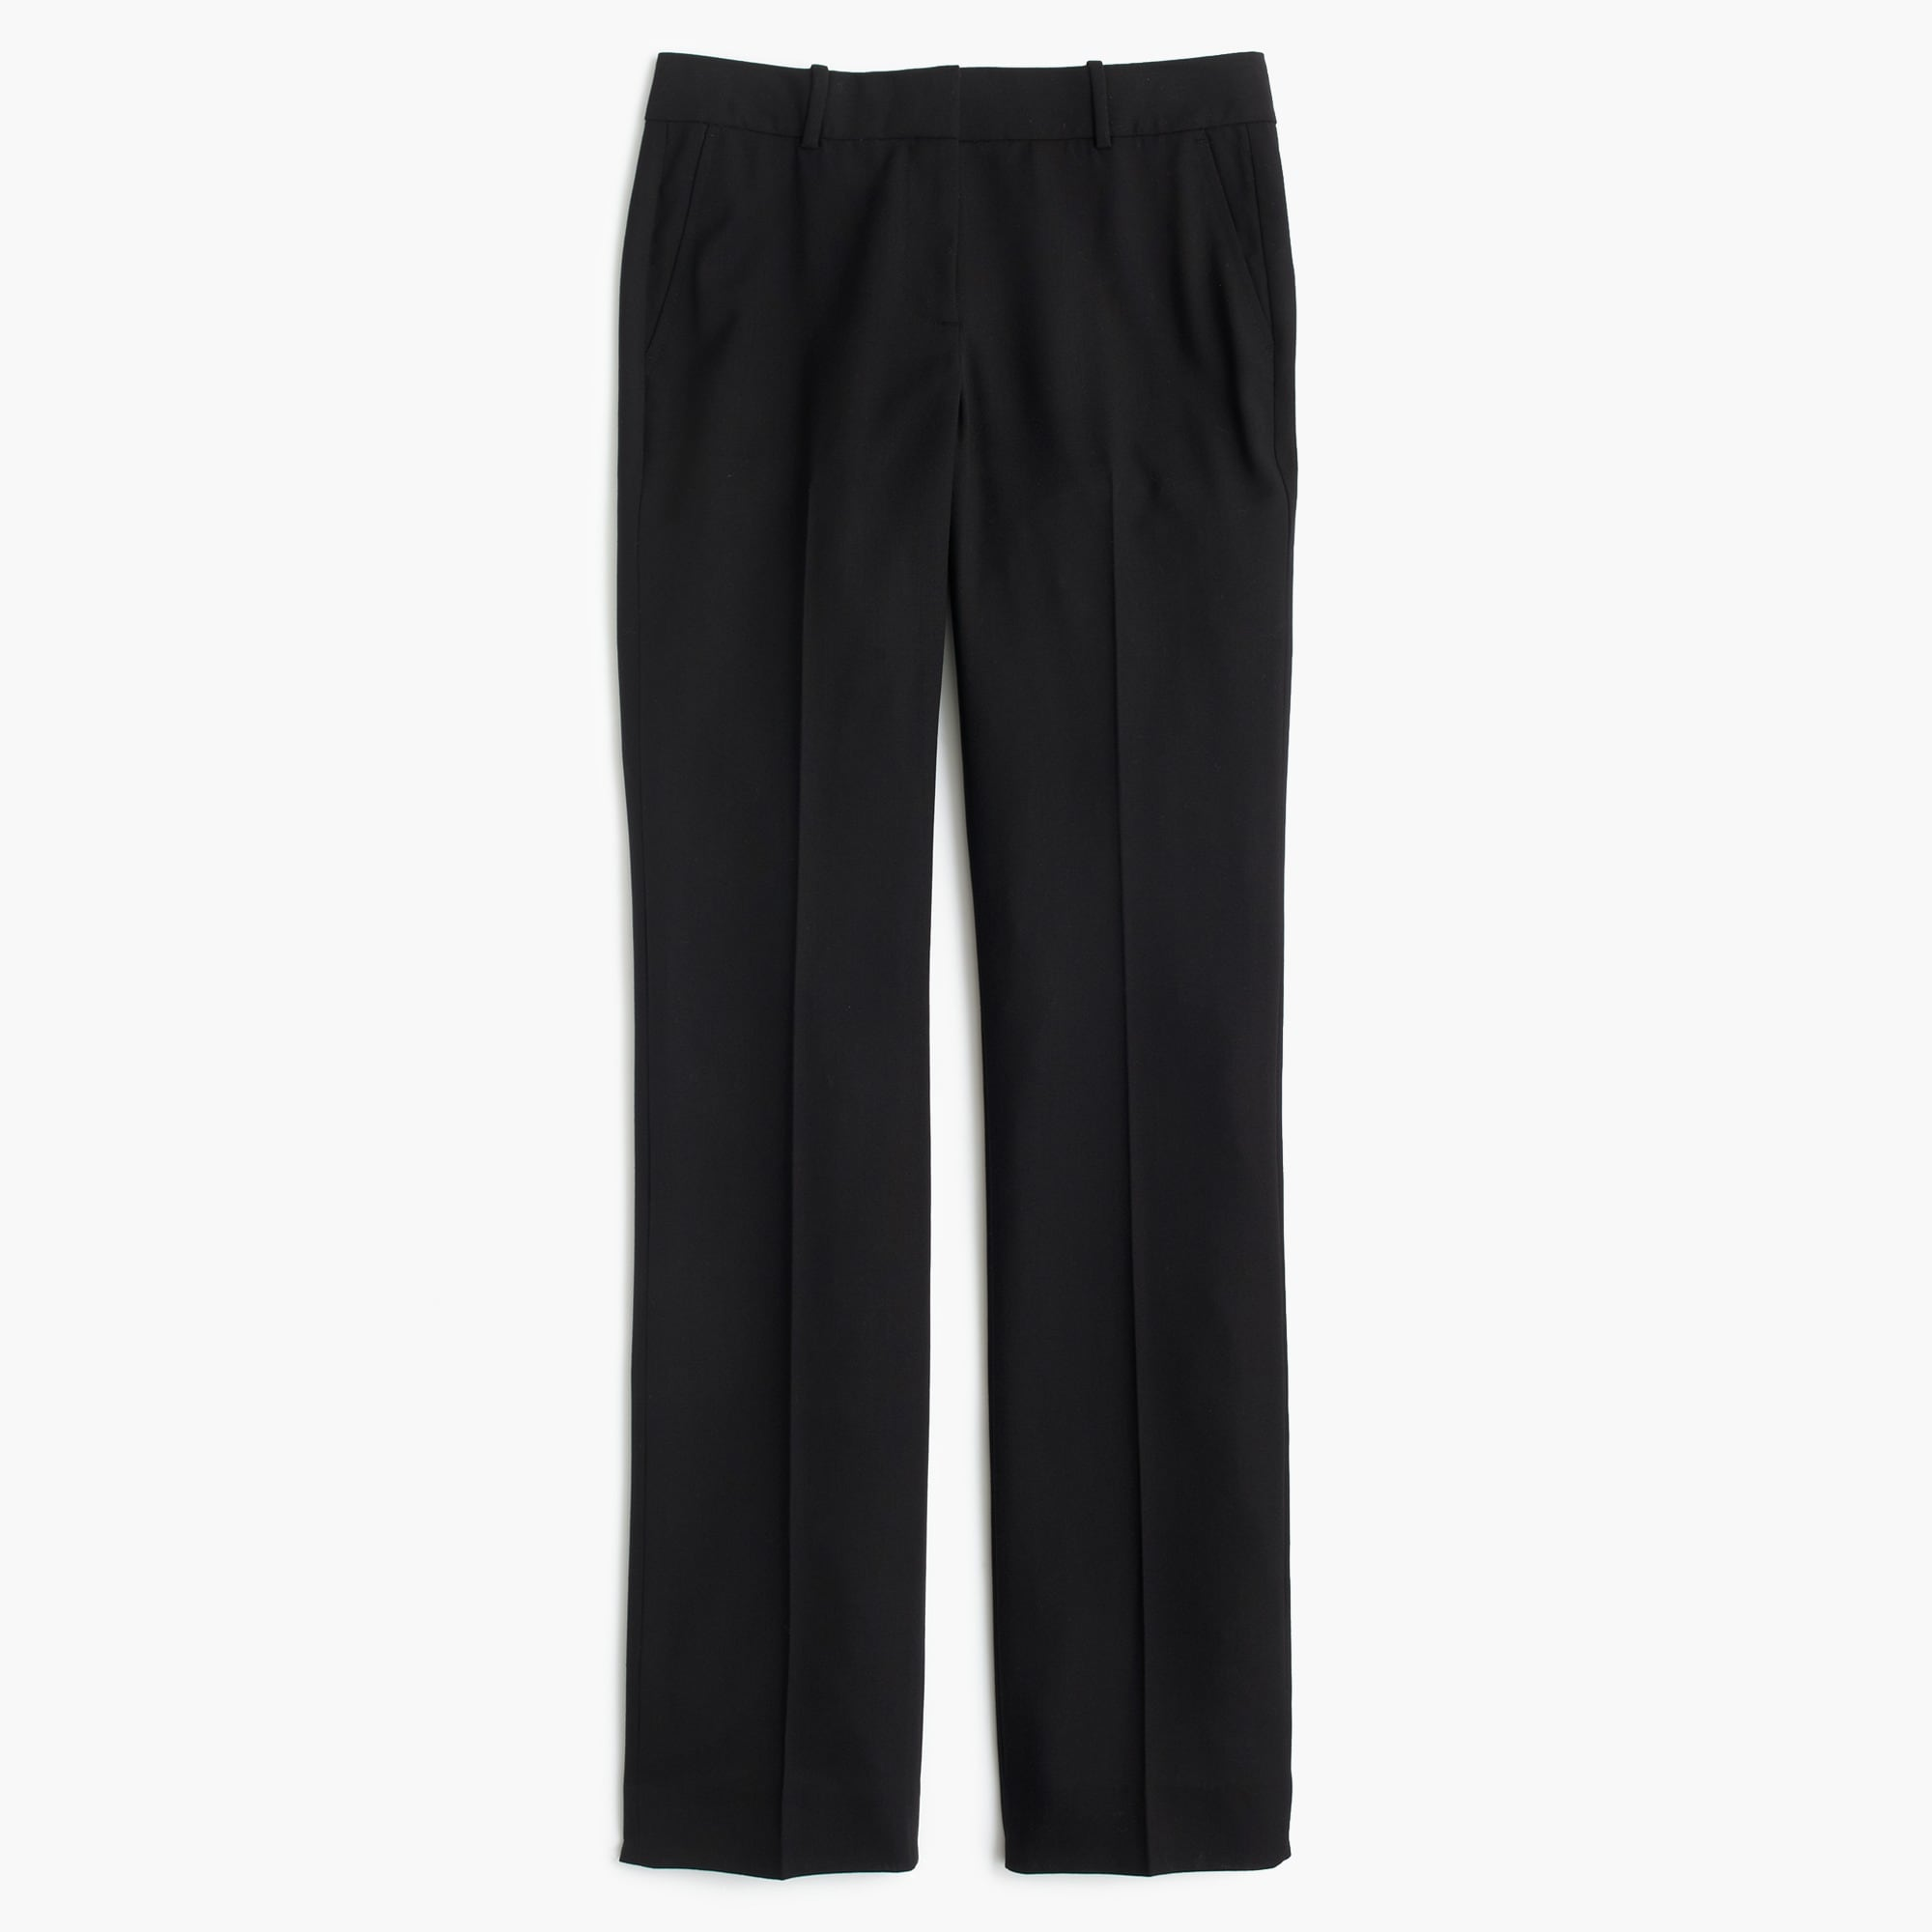 Campbell Traveler trouser in Italian wool